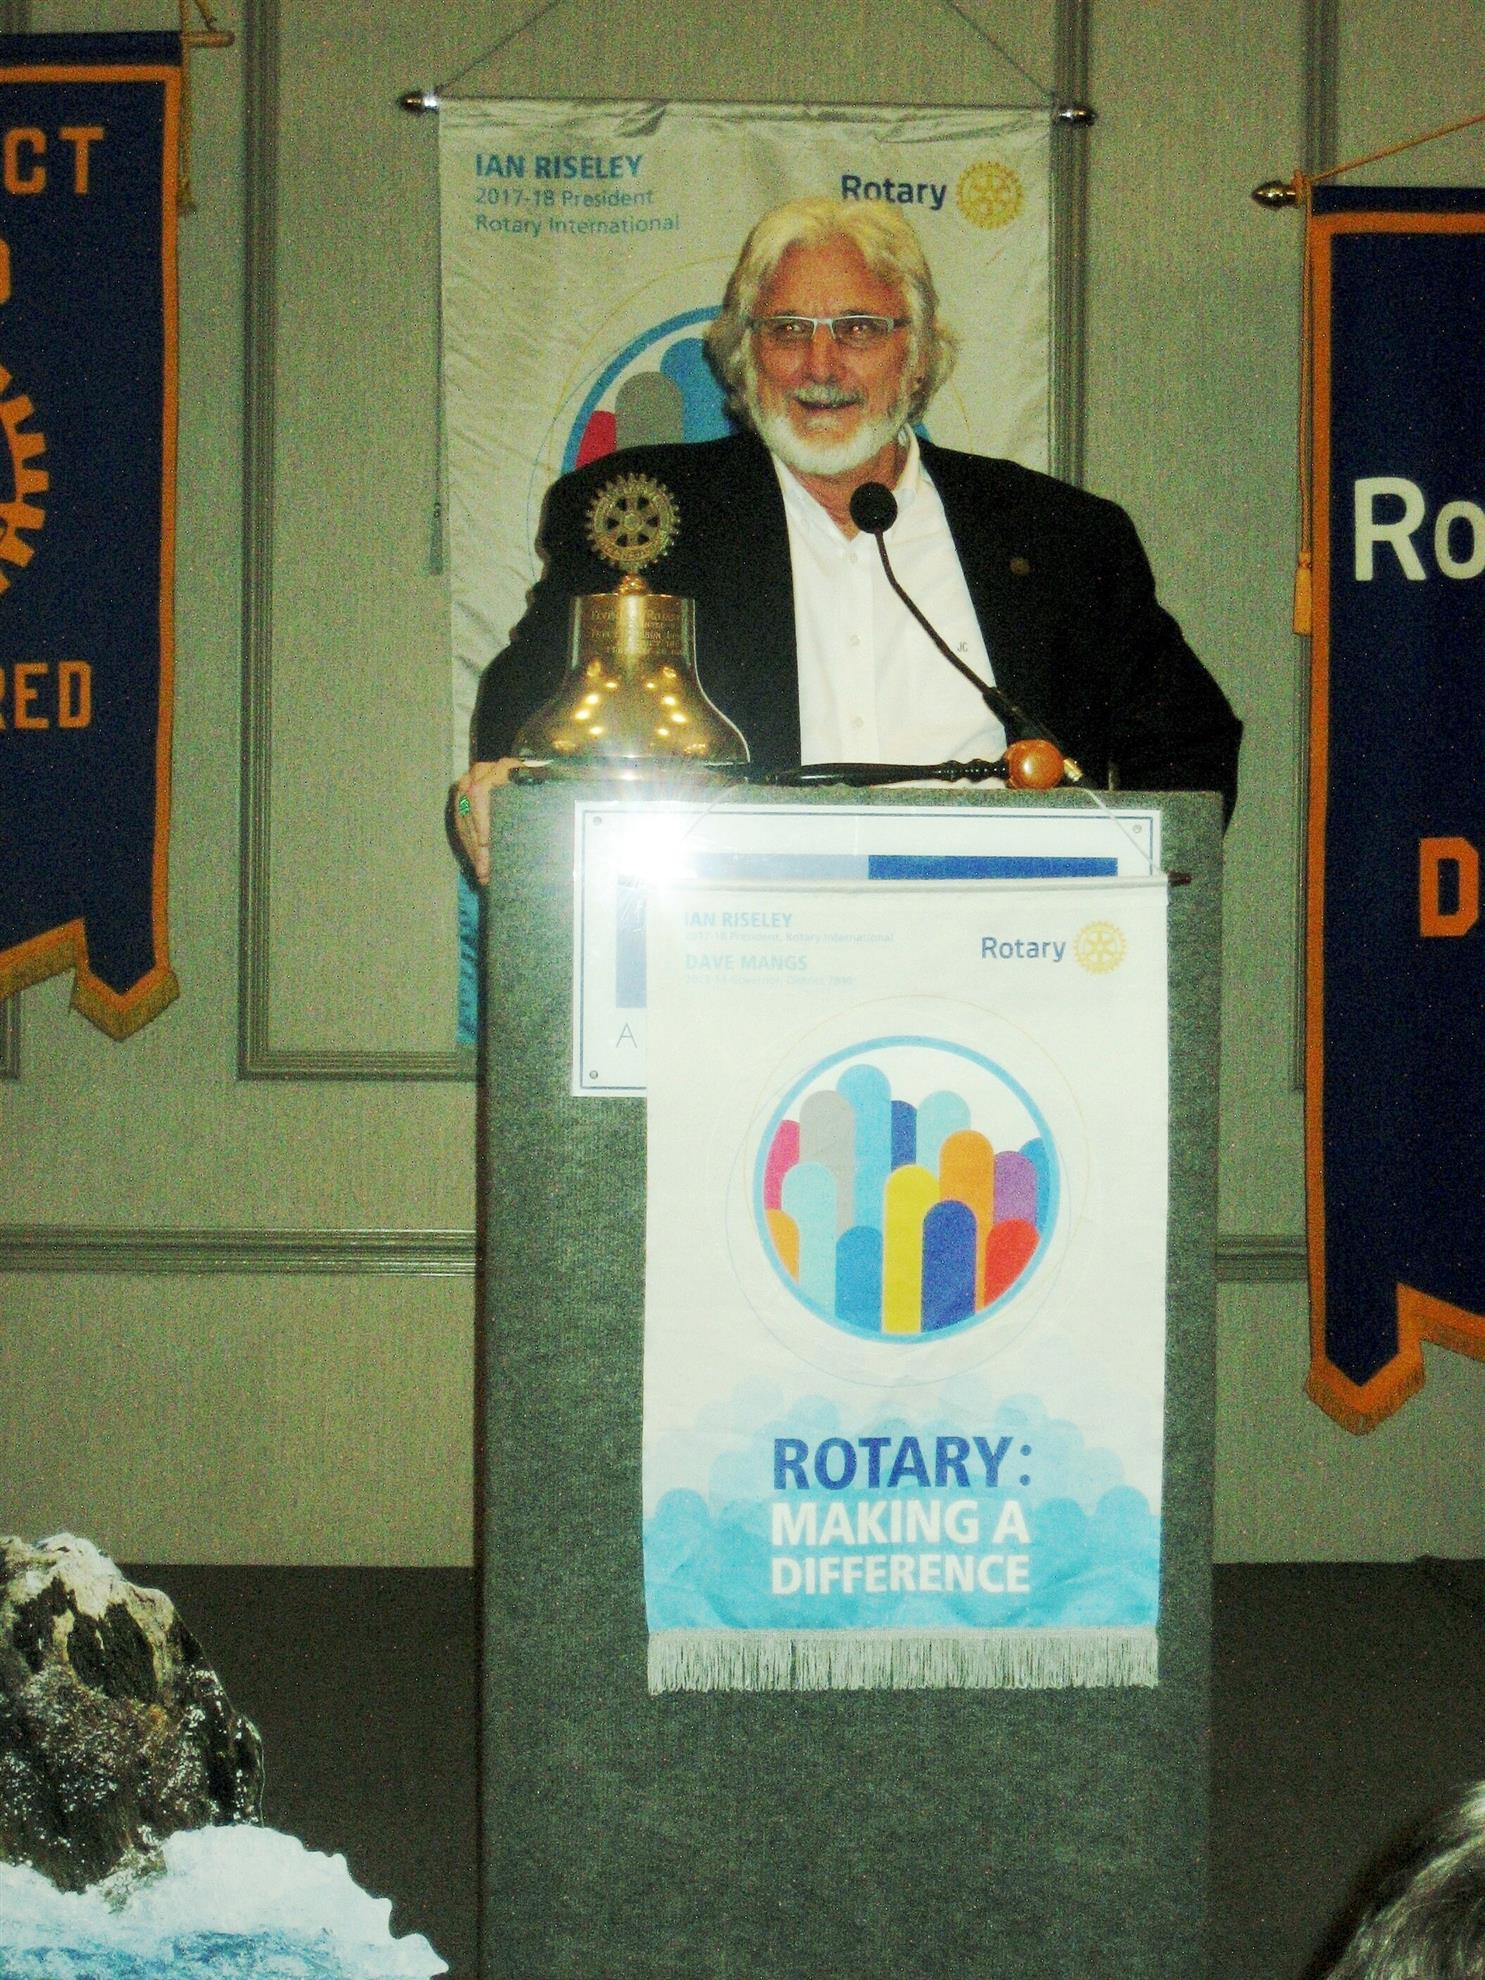 RI Director Jeffery Cadorette inspires all to make changes